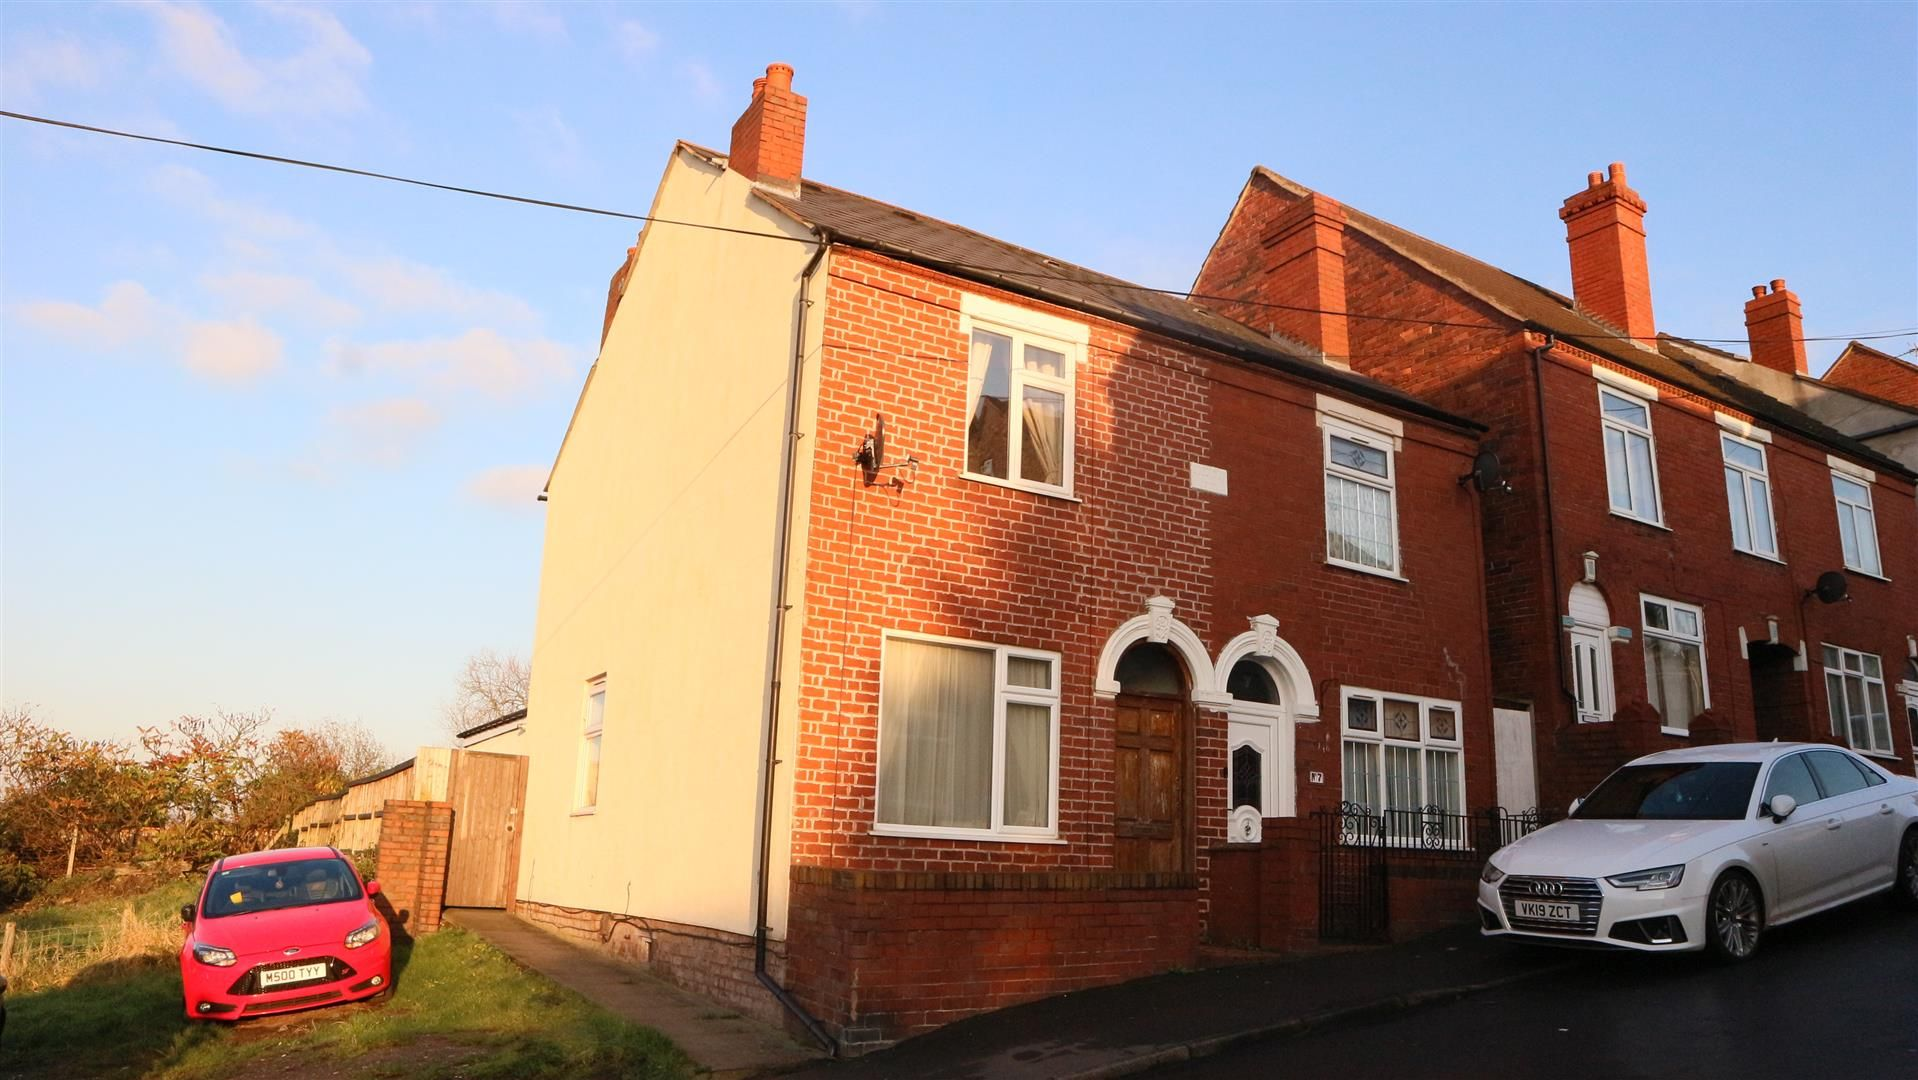 2 bed semi-detached for sale in Wollescote, DY9